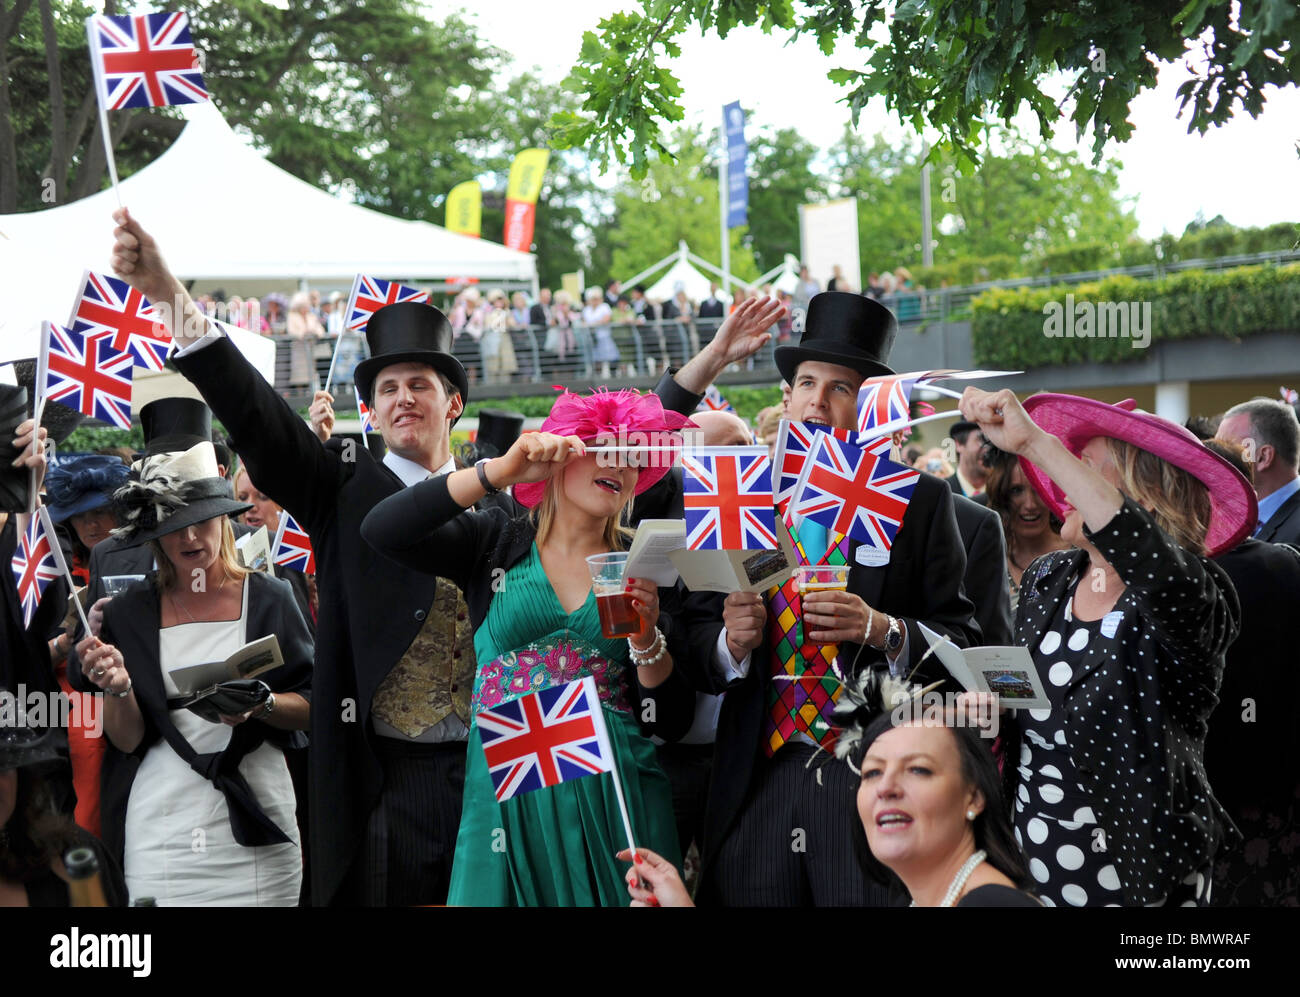 Royal Ascot Berkshire - Racegoers enjoy the traditional end of day singsong at the bandstand with union jack flags - Stock Image